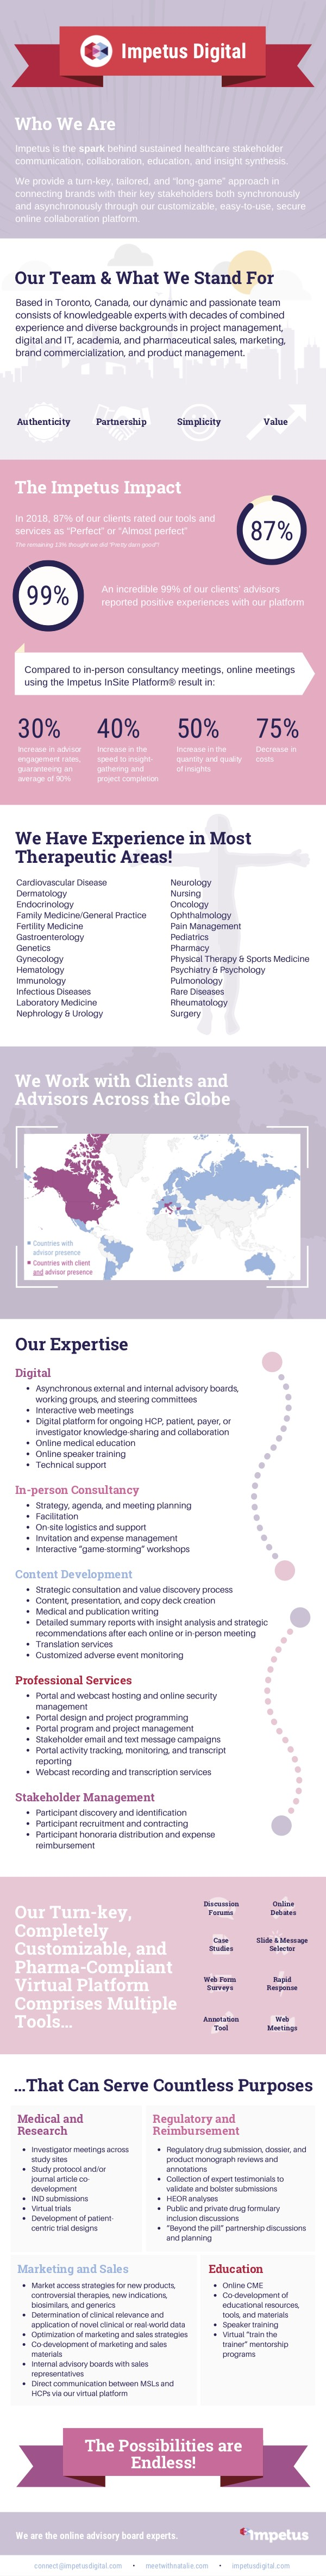 impetus digital services